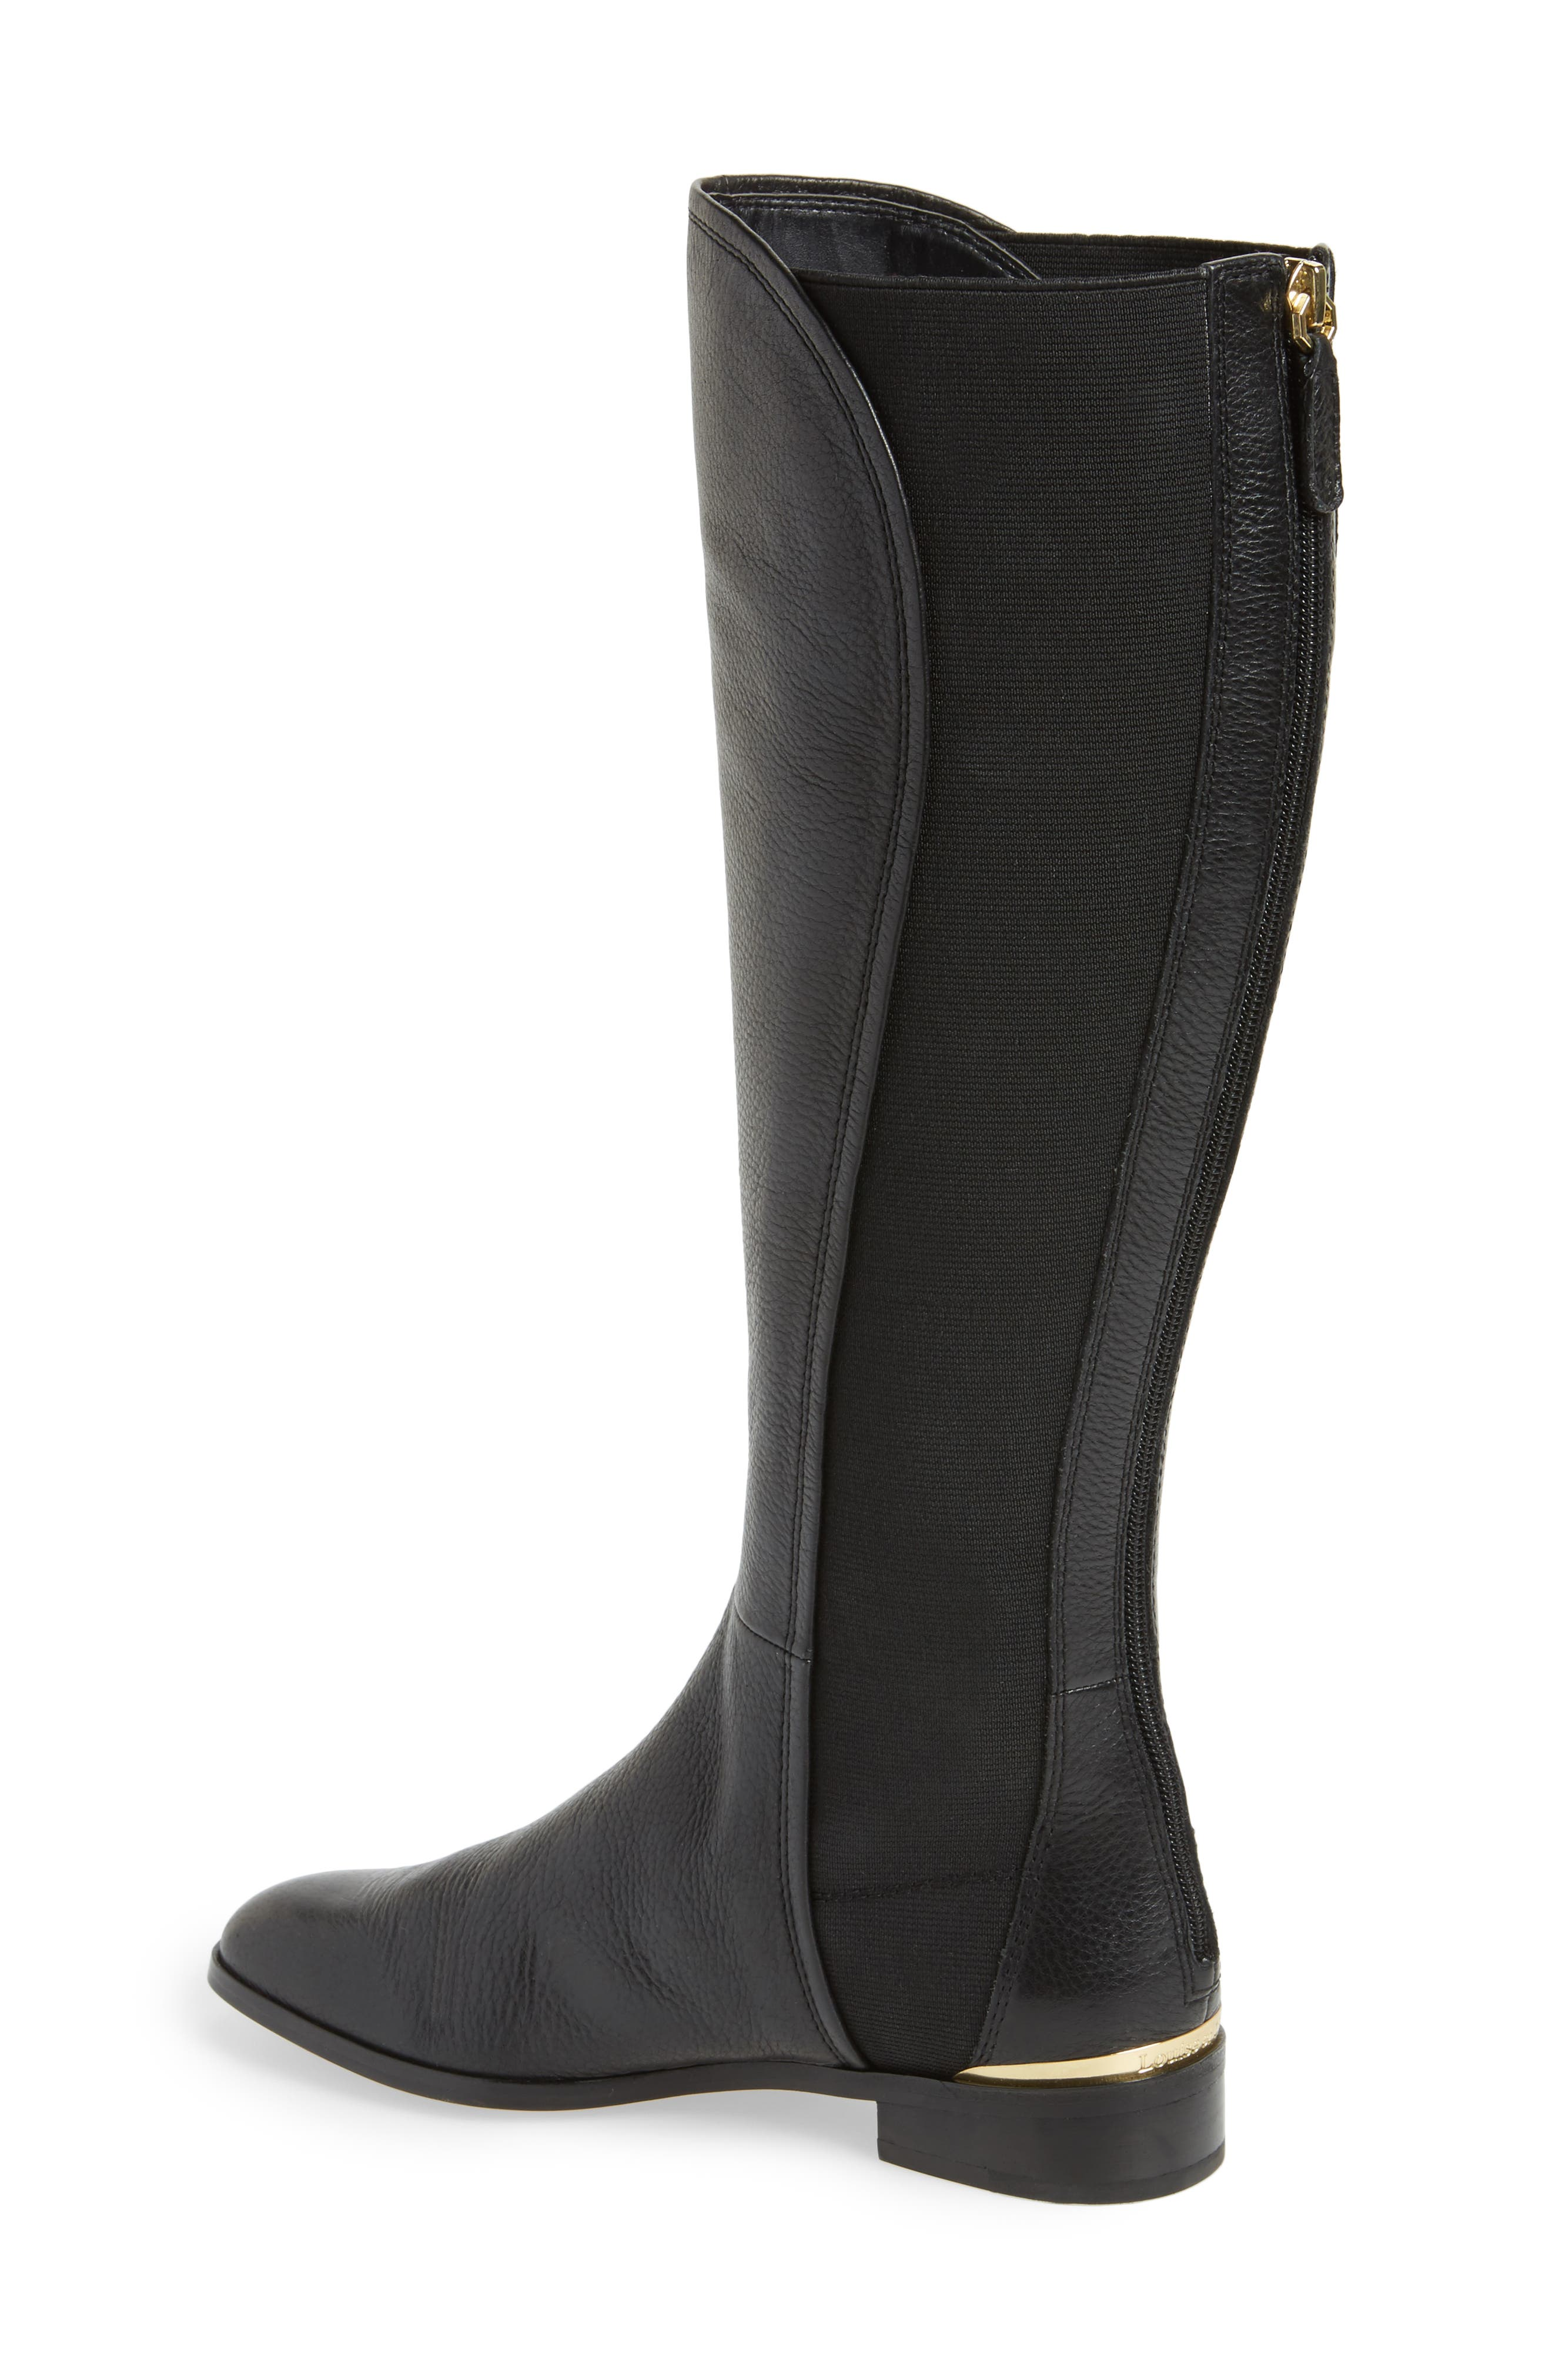 Vallery Elastic Back Knee High Boot,                             Alternate thumbnail 2, color,                             Black Nappa Leather